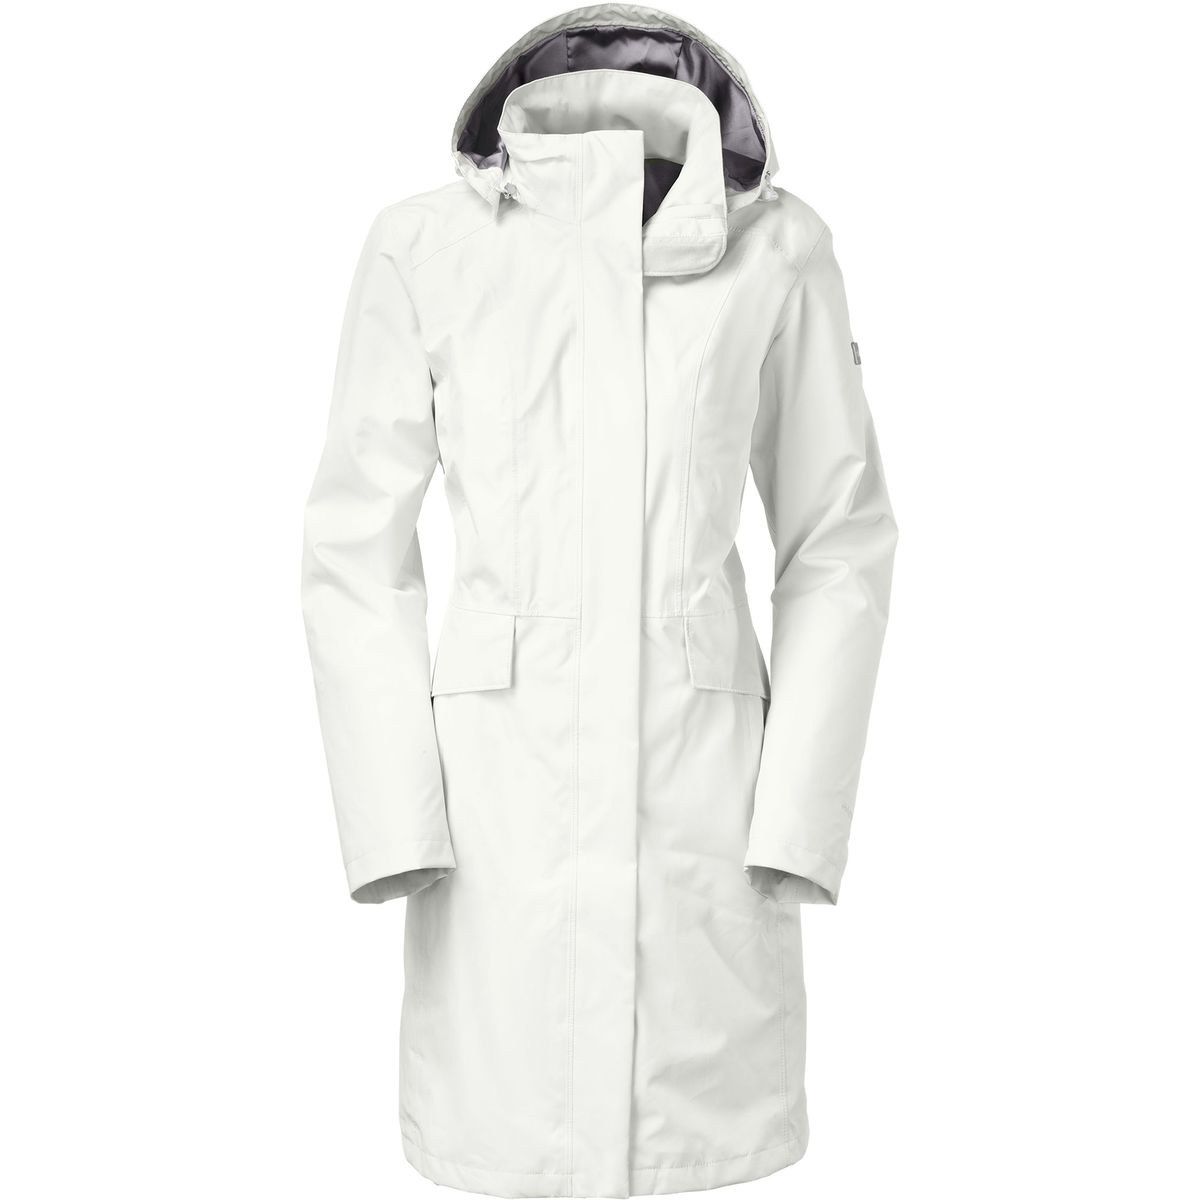 The North Face Suzanne Triclimate Down Trench Coat - Women